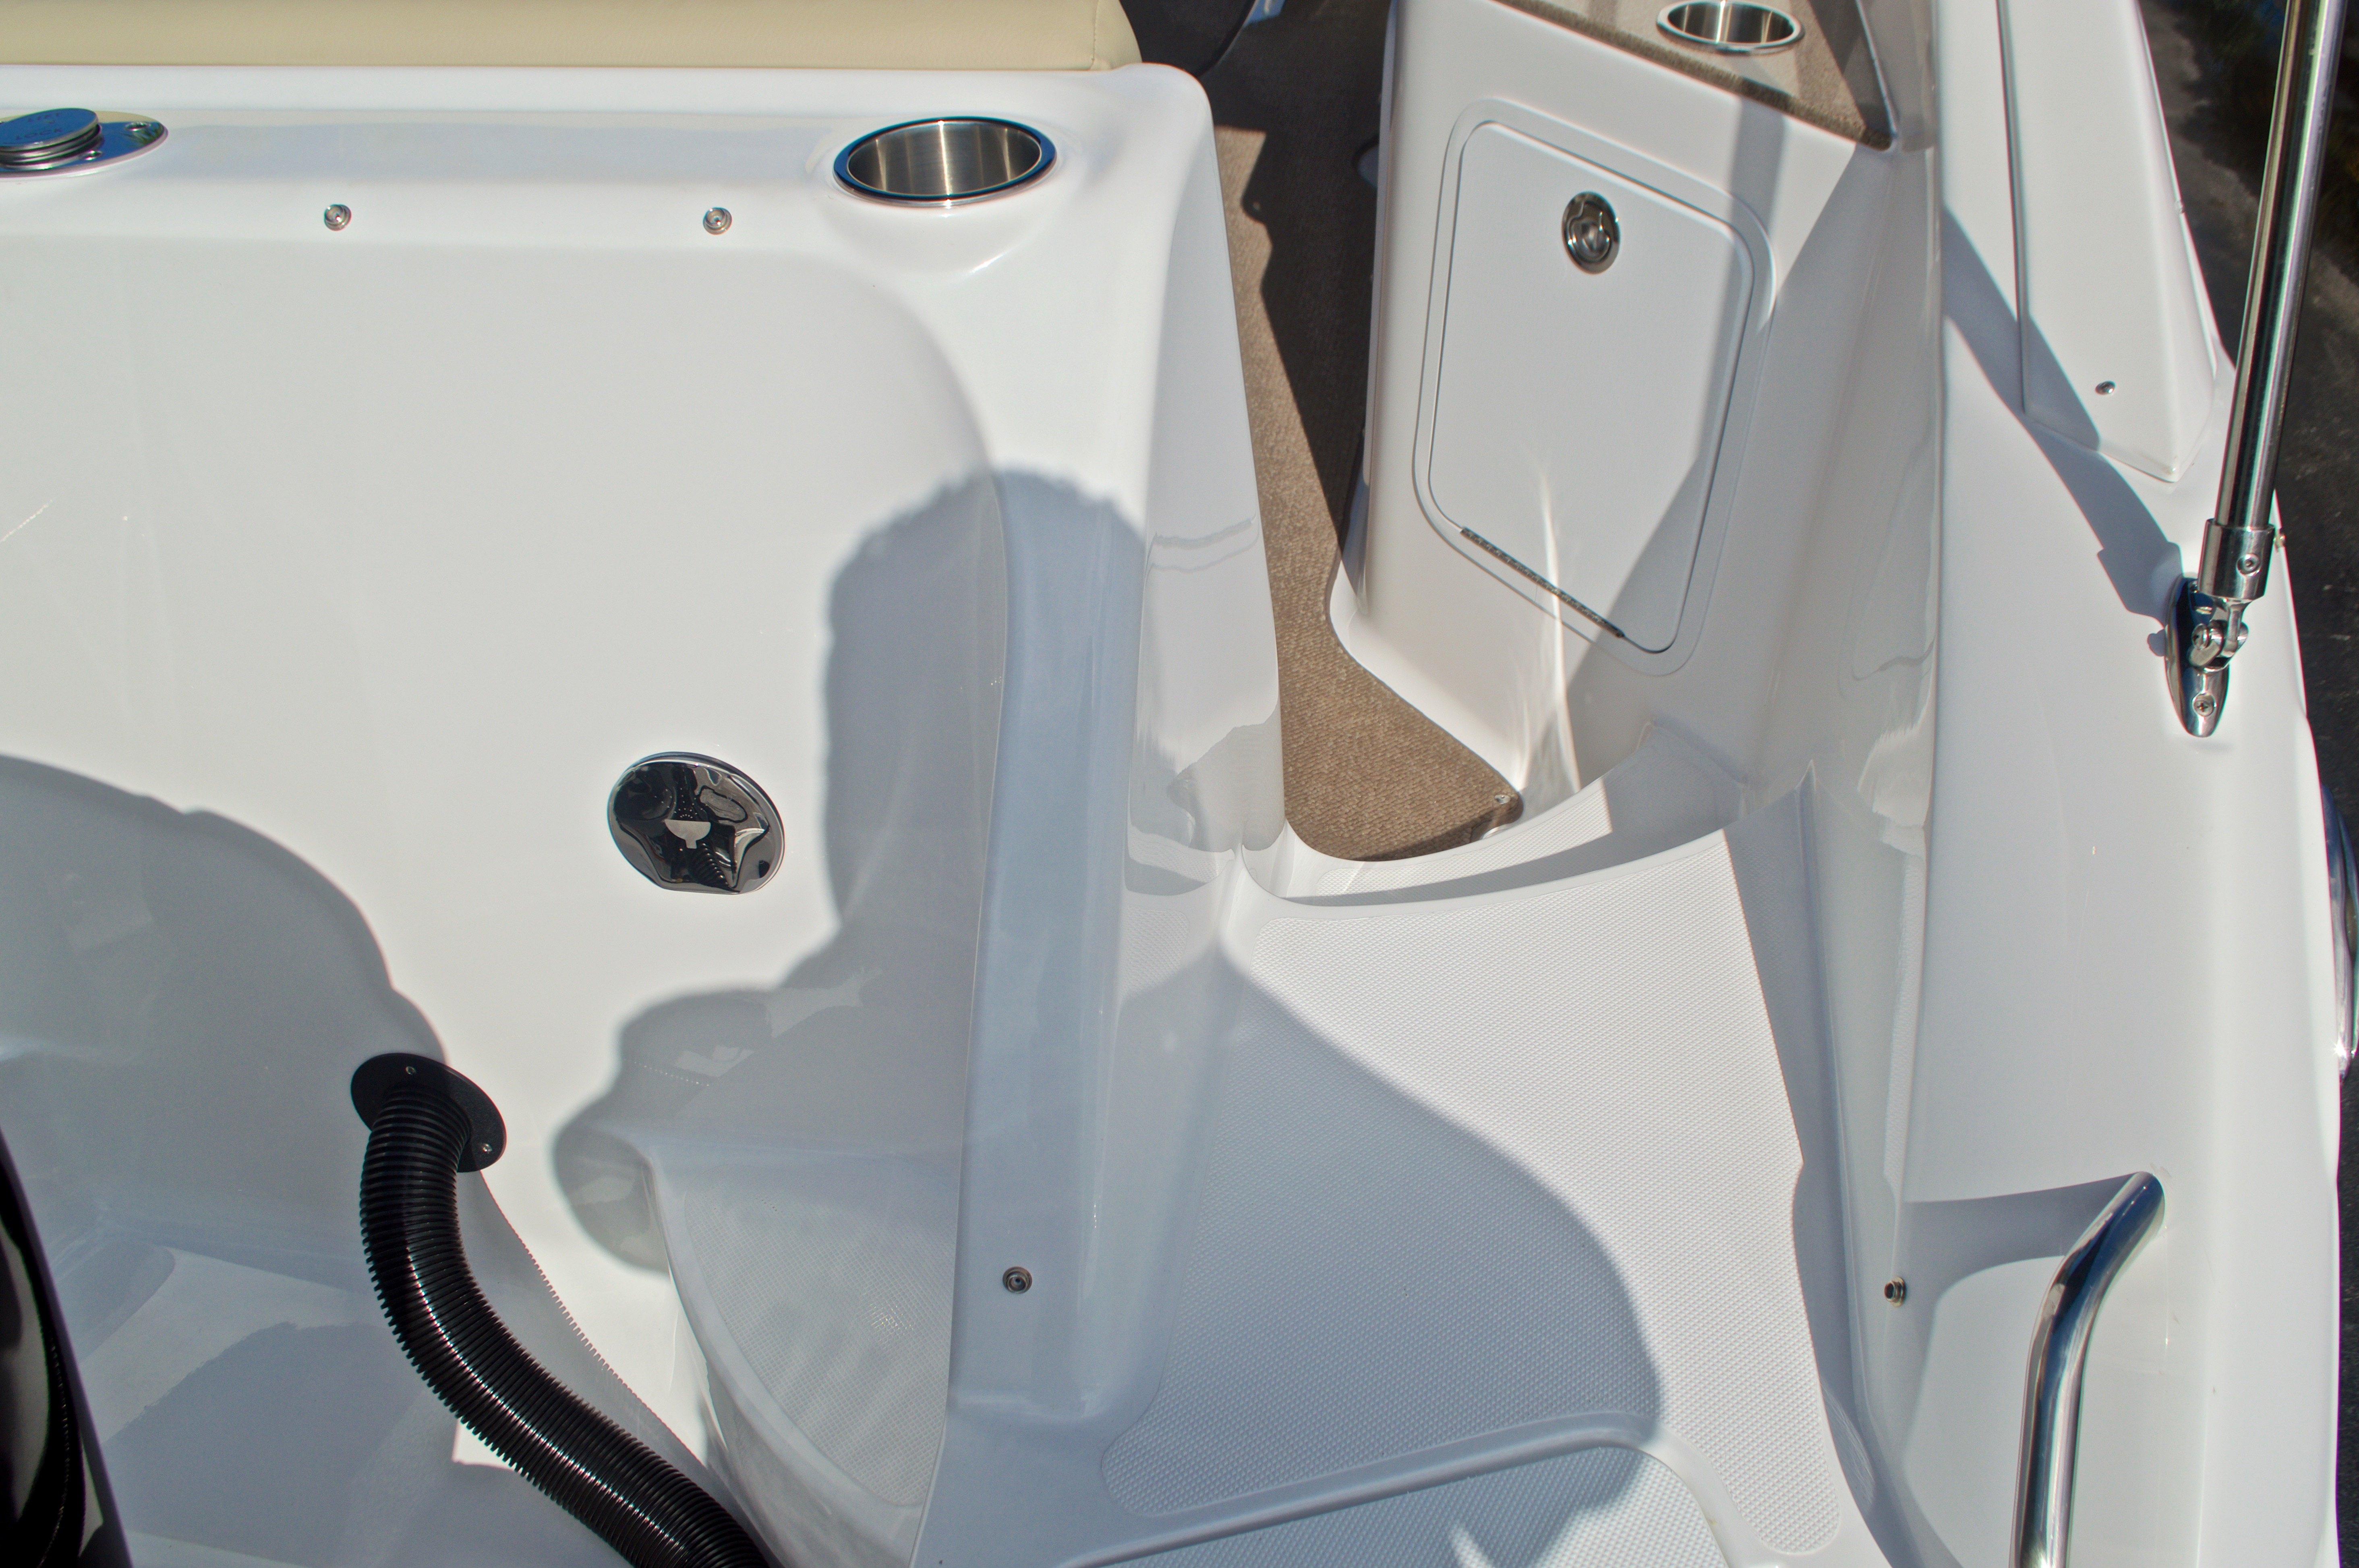 Thumbnail 10 for New 2017 Hurricane SunDeck SD 2400 OB boat for sale in West Palm Beach, FL